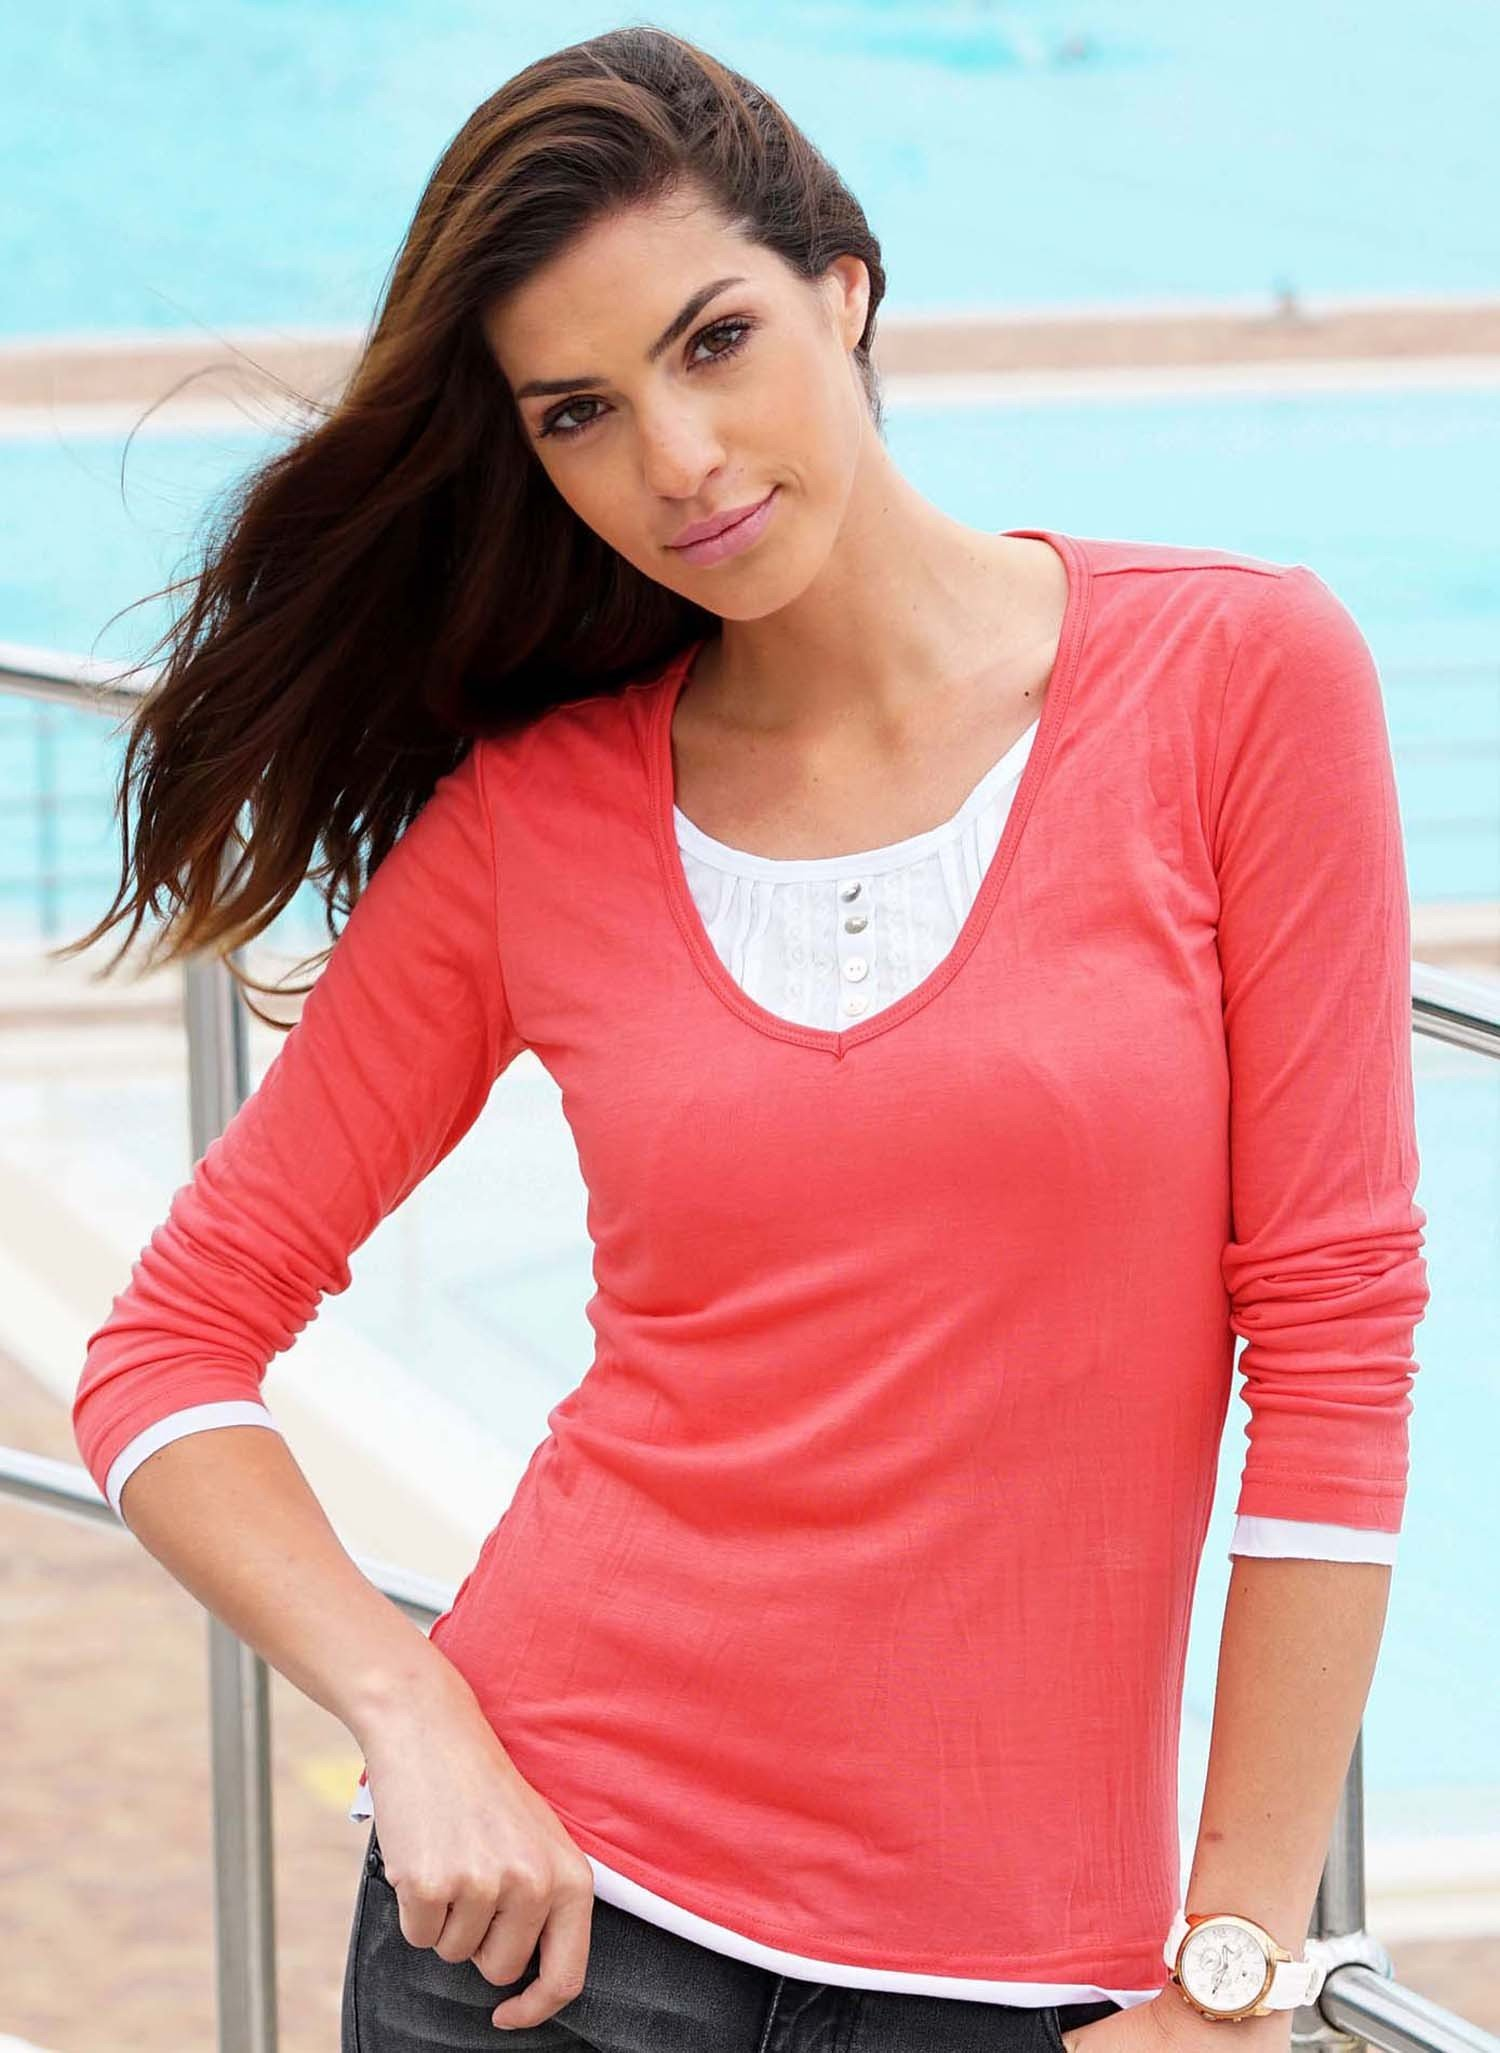 D-LA-Top,Knitter-Look coralle L 028 - 1 - Ronja.ch